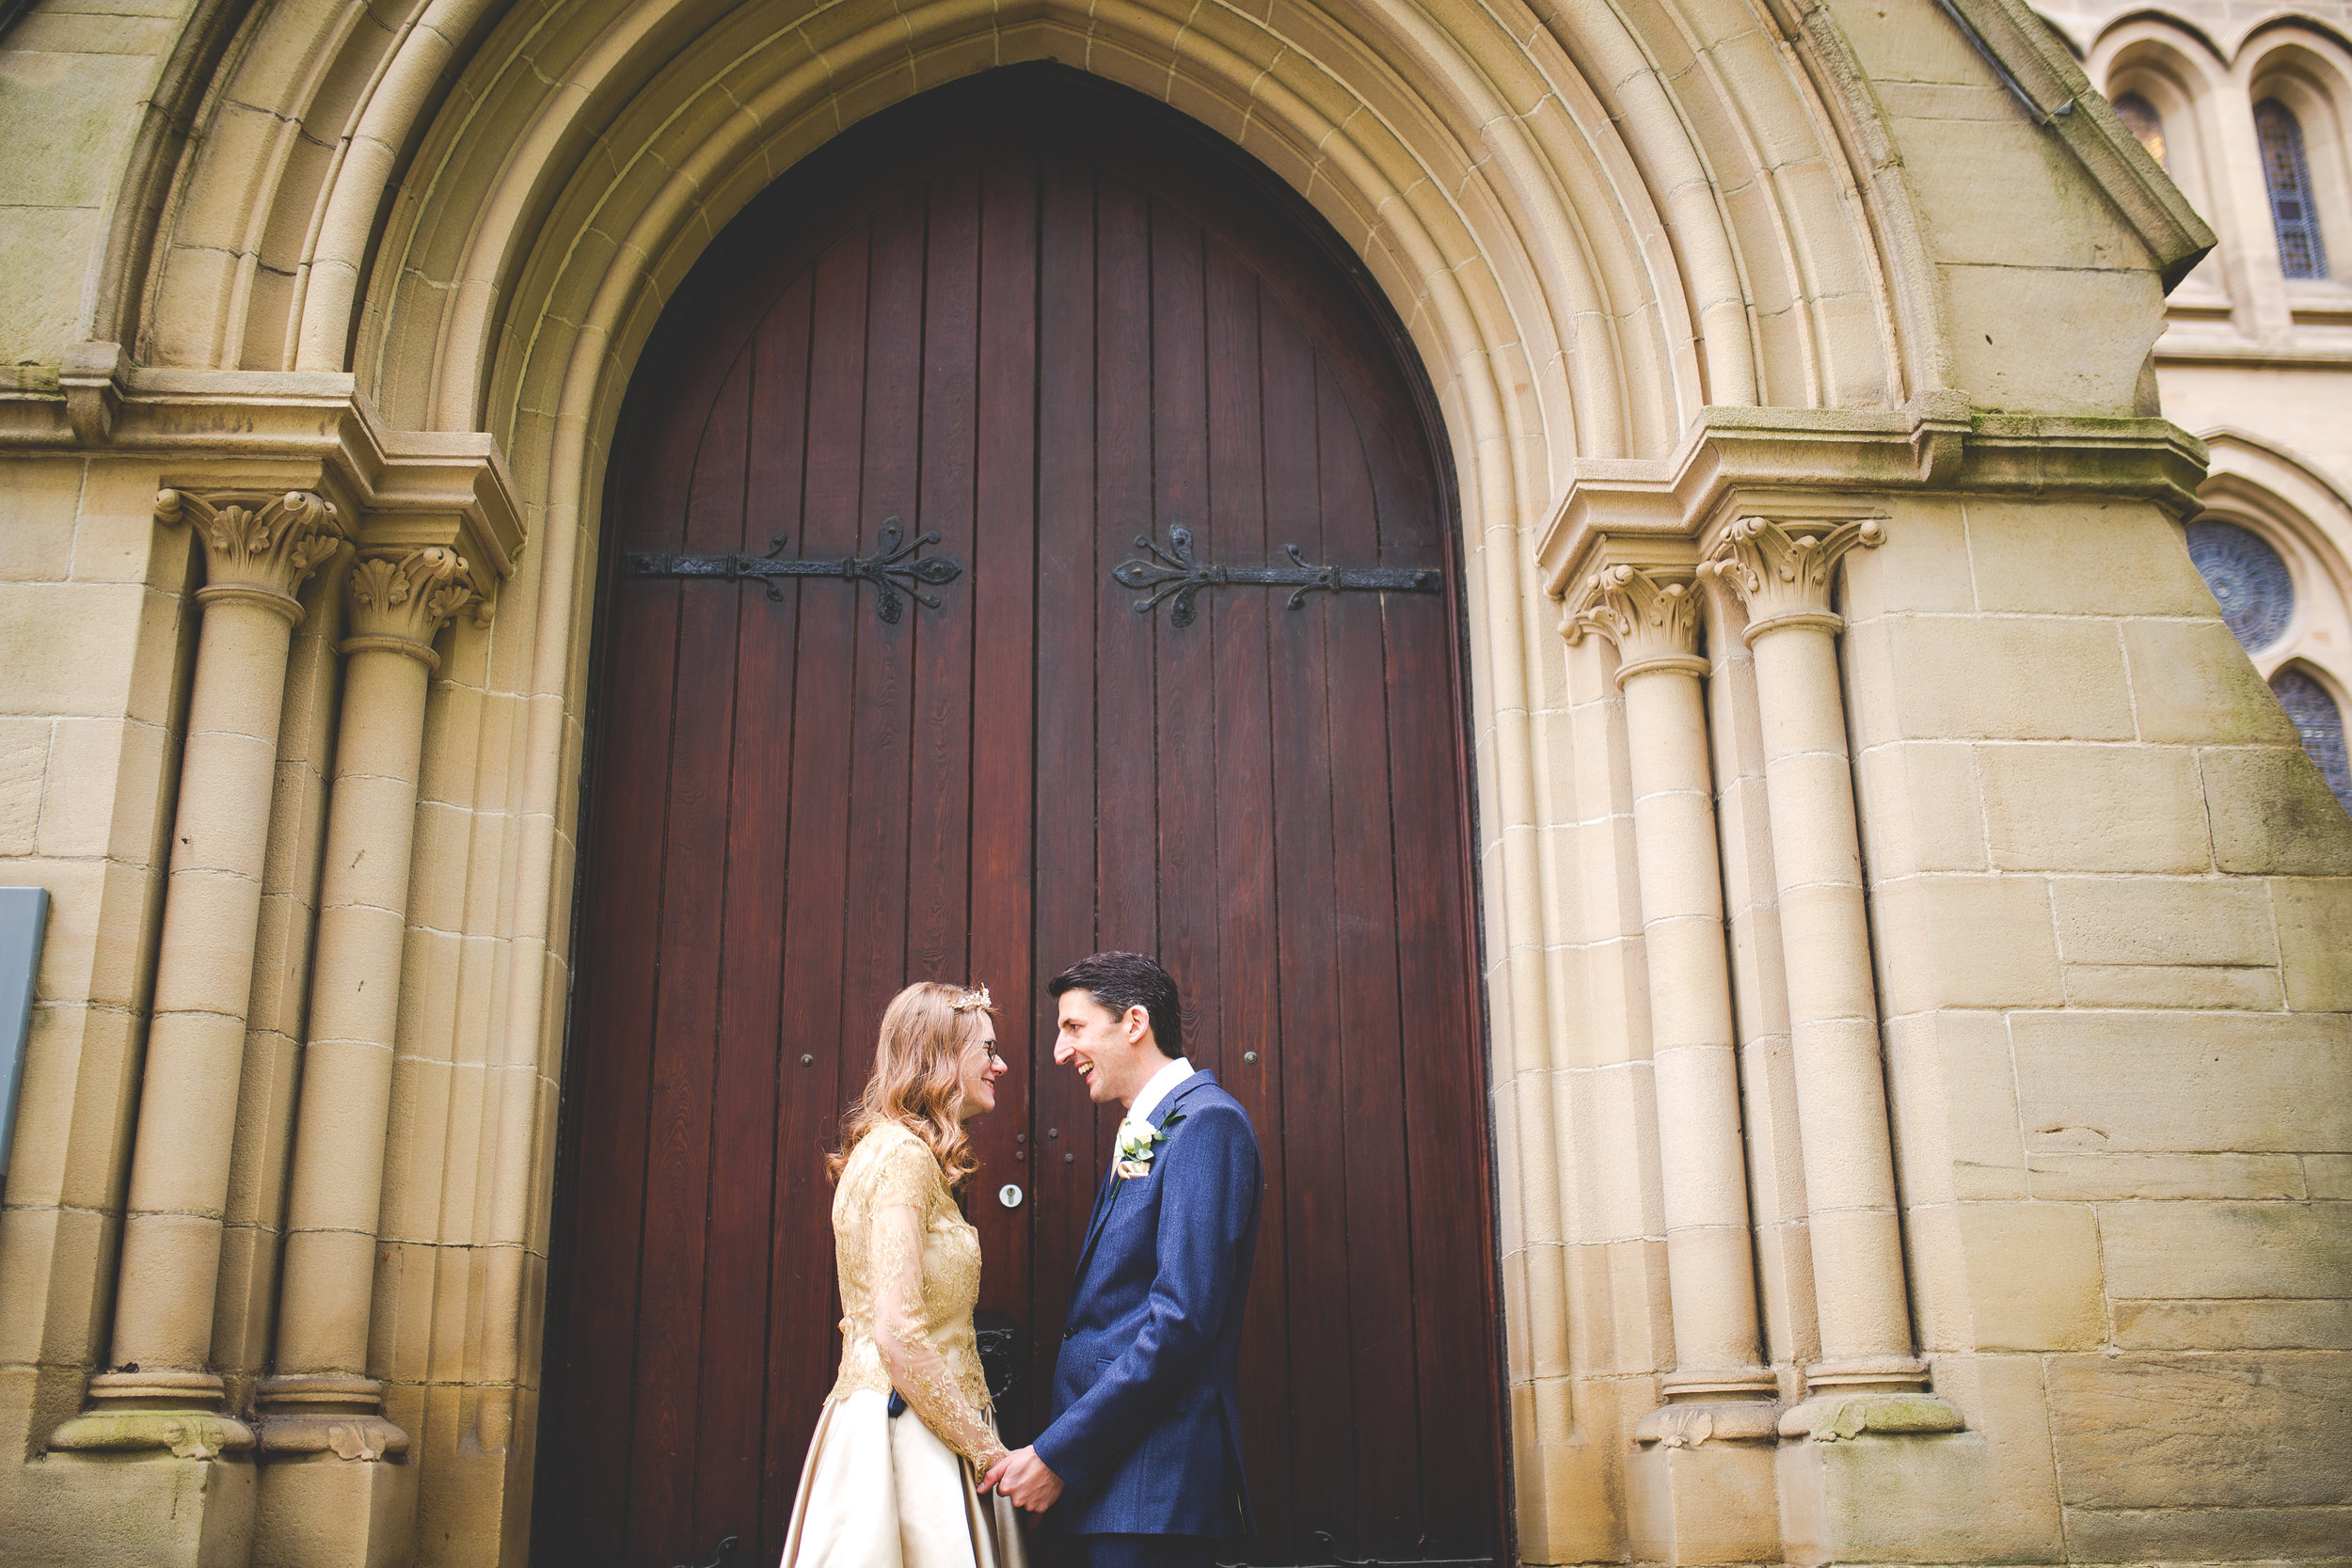 Whitworth Hall modern wedding in Manchester